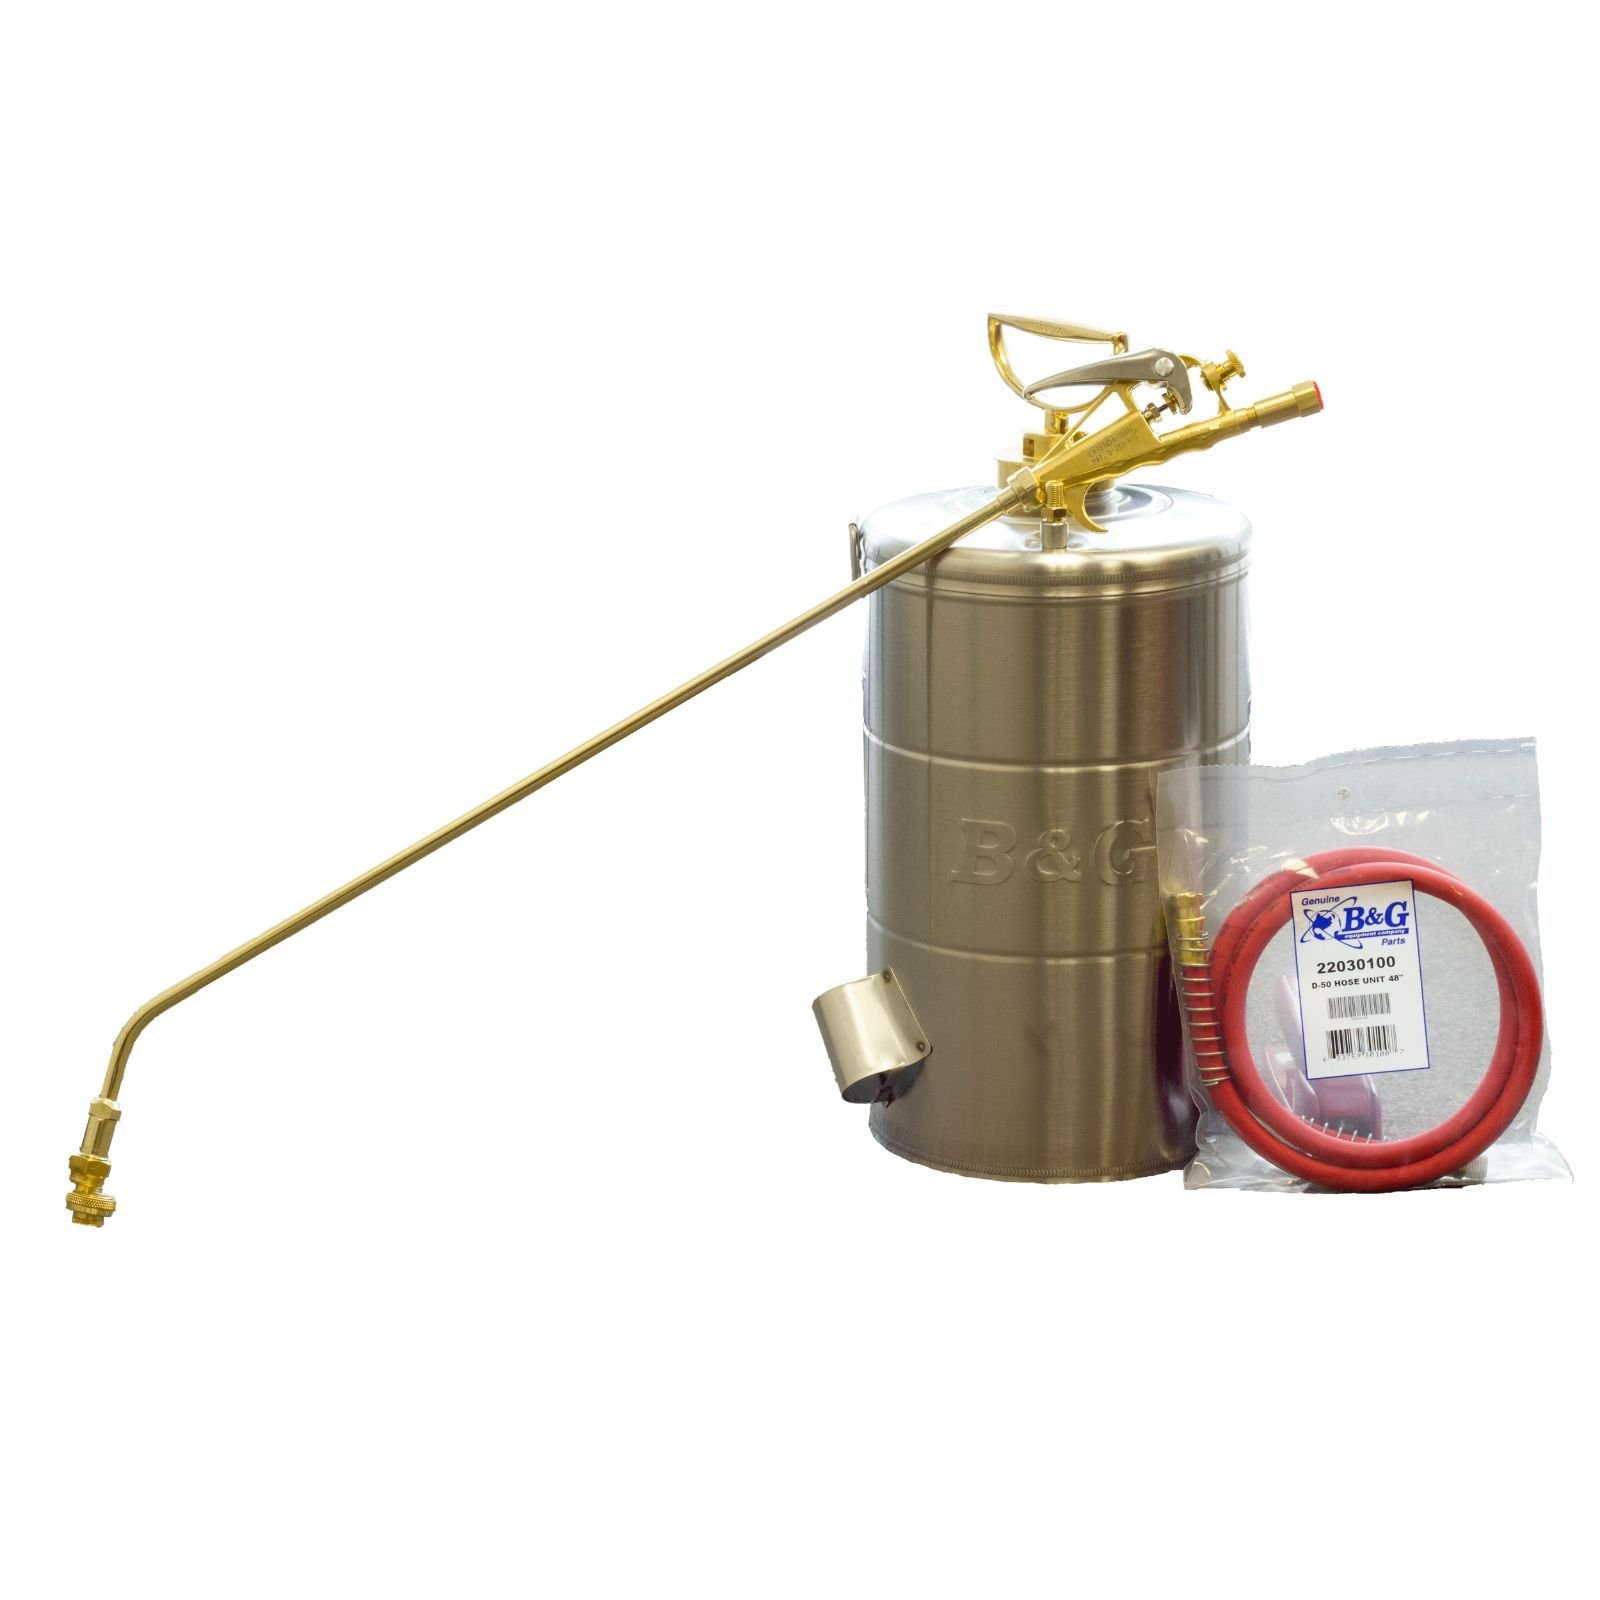 B&G 2 Gallon Stainless Steel Sprayer 24 Inch Wand 4 Way Tip 48''Hose N224-S-24 ;P#O455K5/U 7RK-B220731